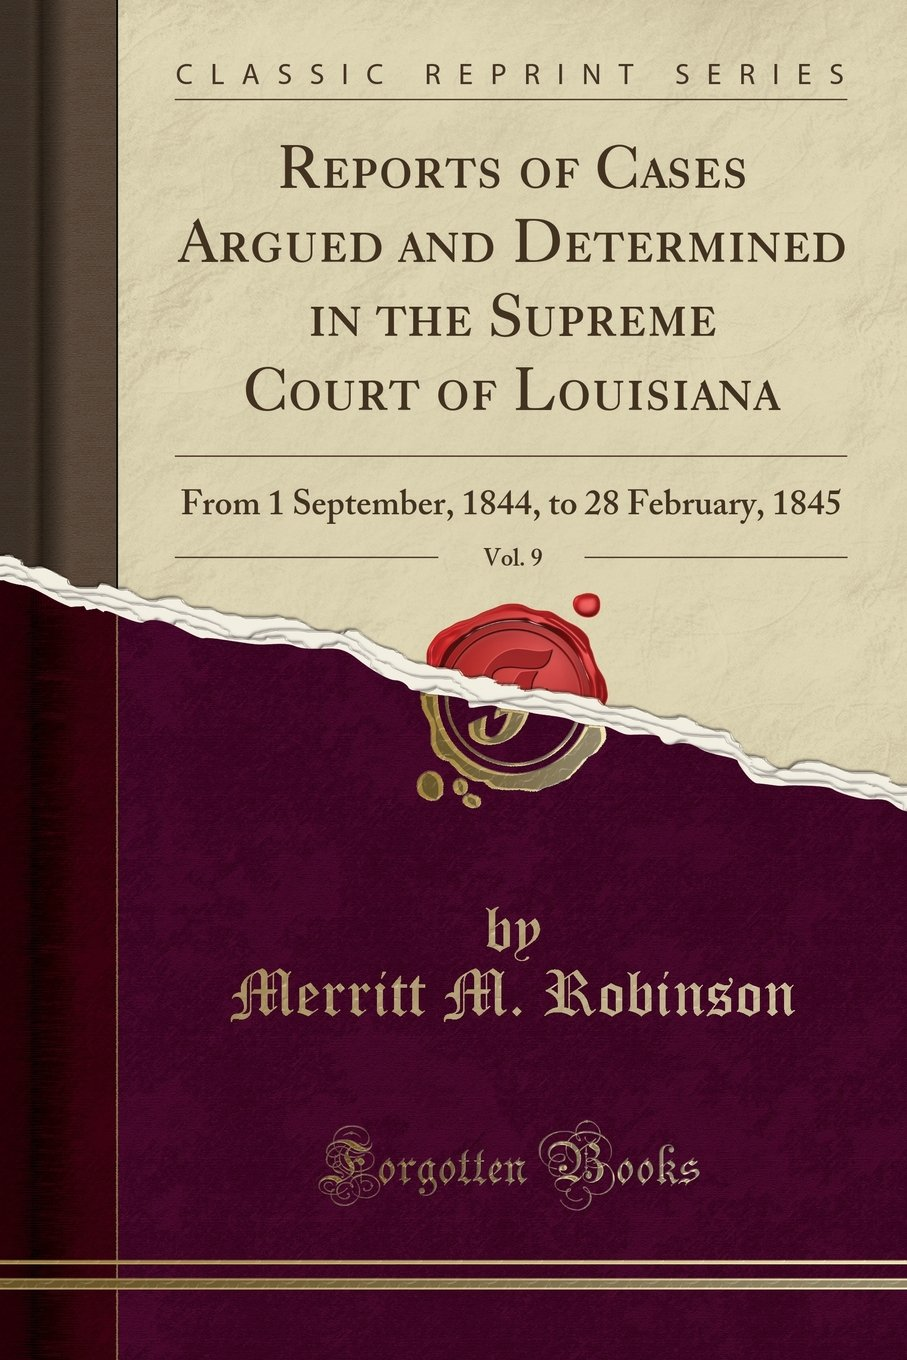 Reports of Cases Argued and Determined in the Supreme Court of Louisiana, Vol. 9: From 1 September, 1844, to 28 February, 1845 (Classic Reprint) pdf